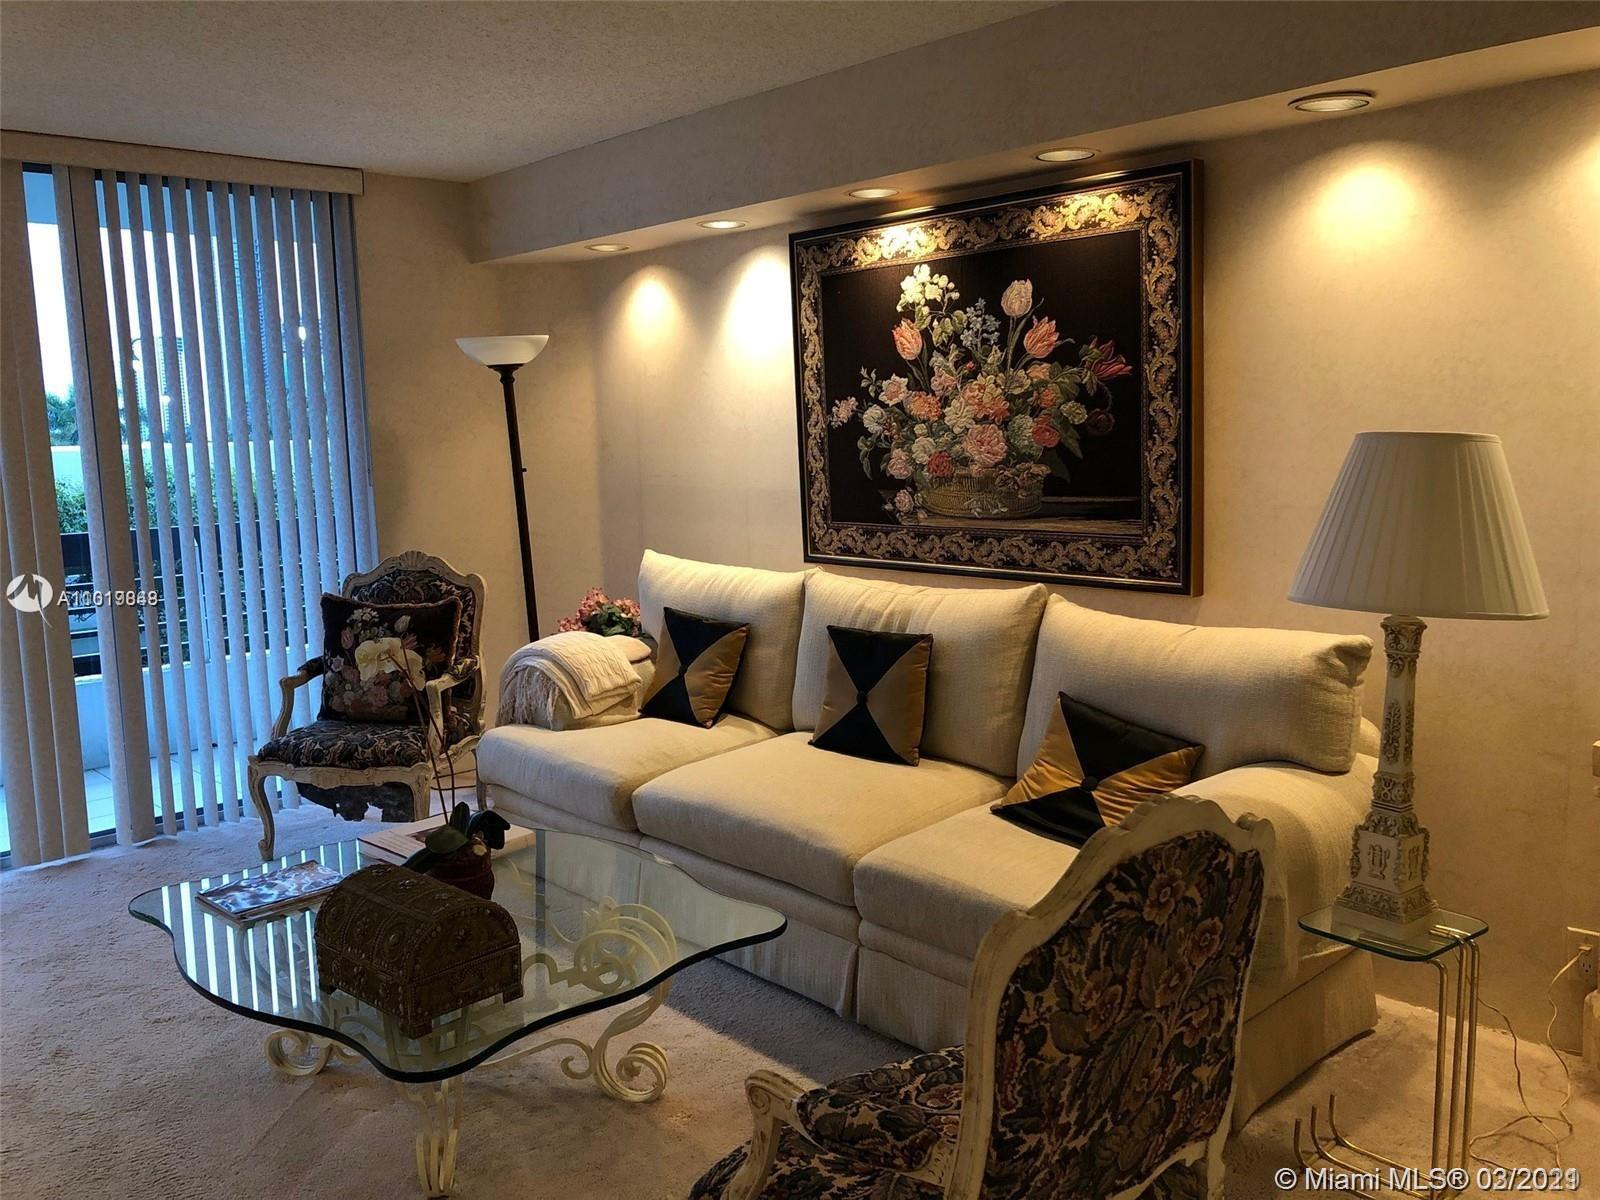 Mystic Pointe Tower 500 #414 - 3530 Mystic Pointe Dr #414, Aventura, FL 33180